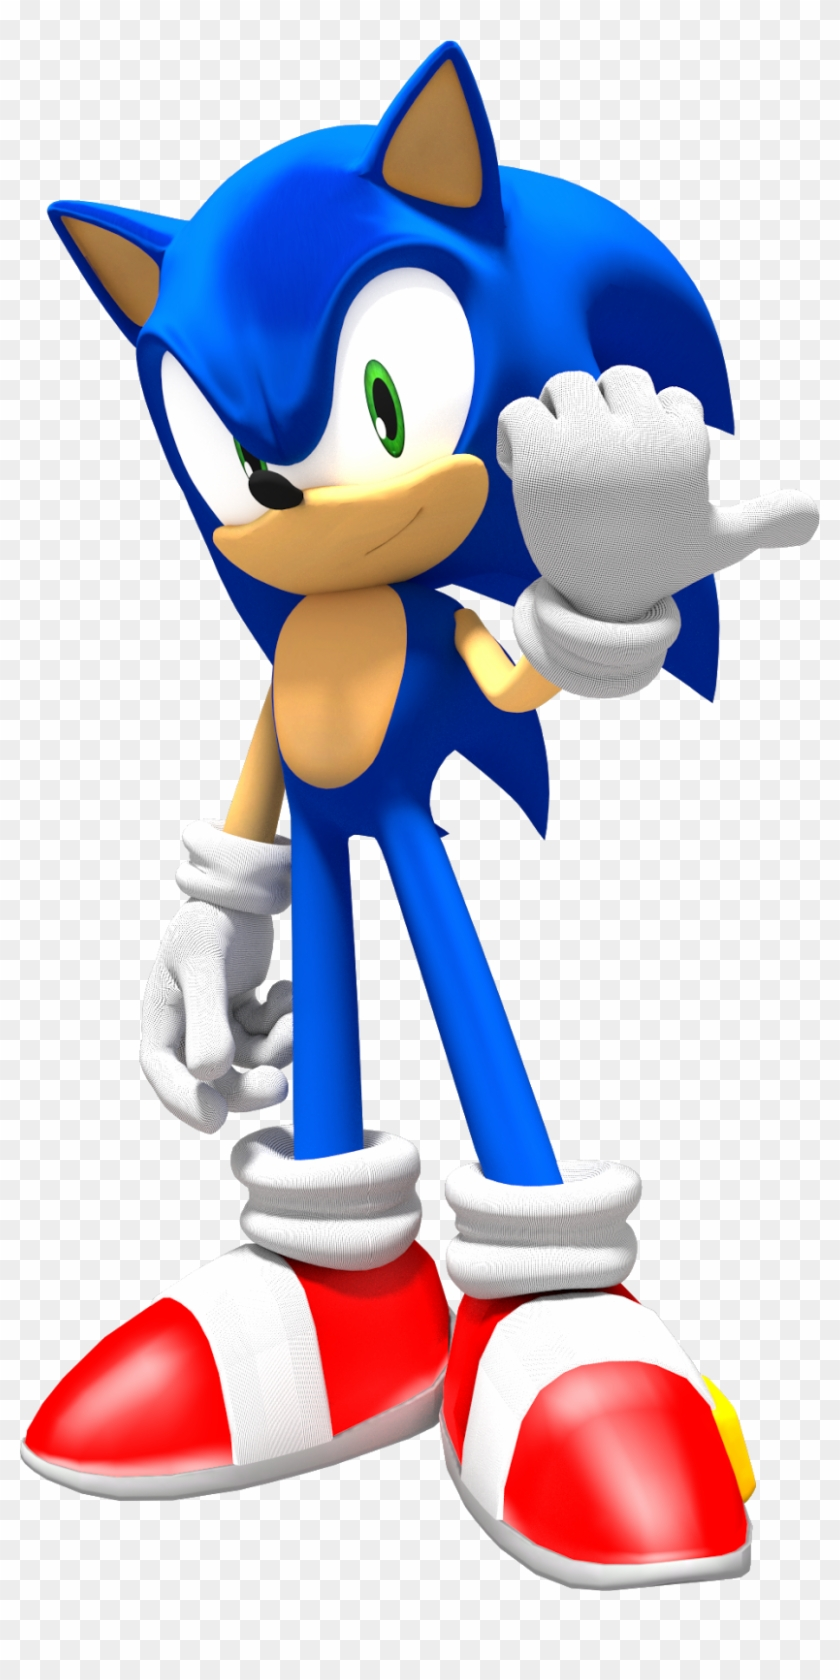 Sonic The Hedgehog Png Pack Transparent Png 825x1600 323884 Pngfind